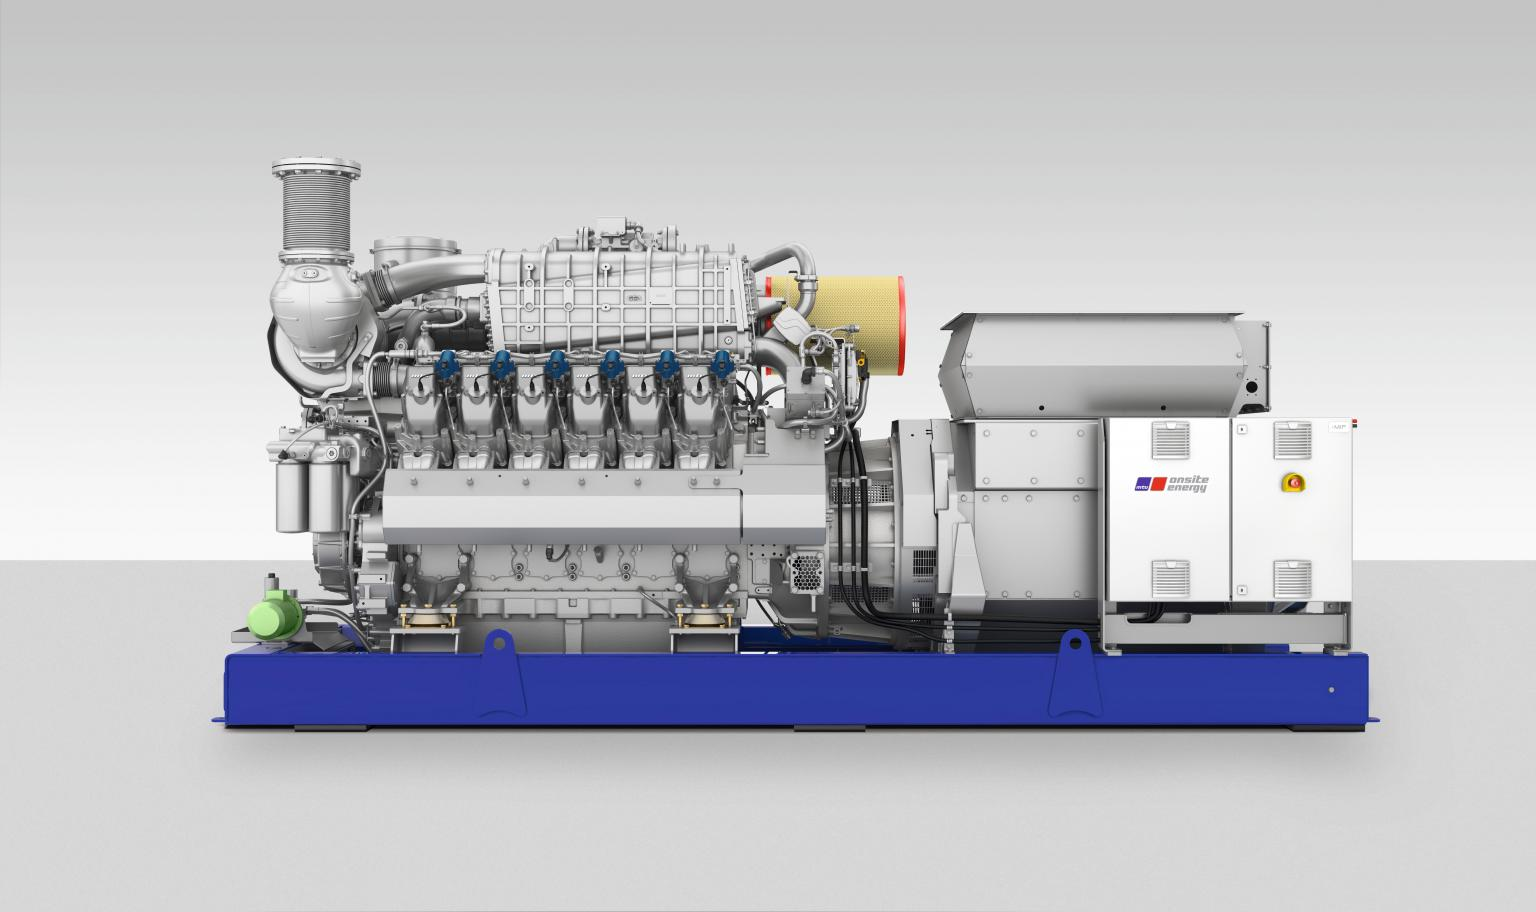 MTU Onsite Energy gensets are ideal for use in hybrid power plants